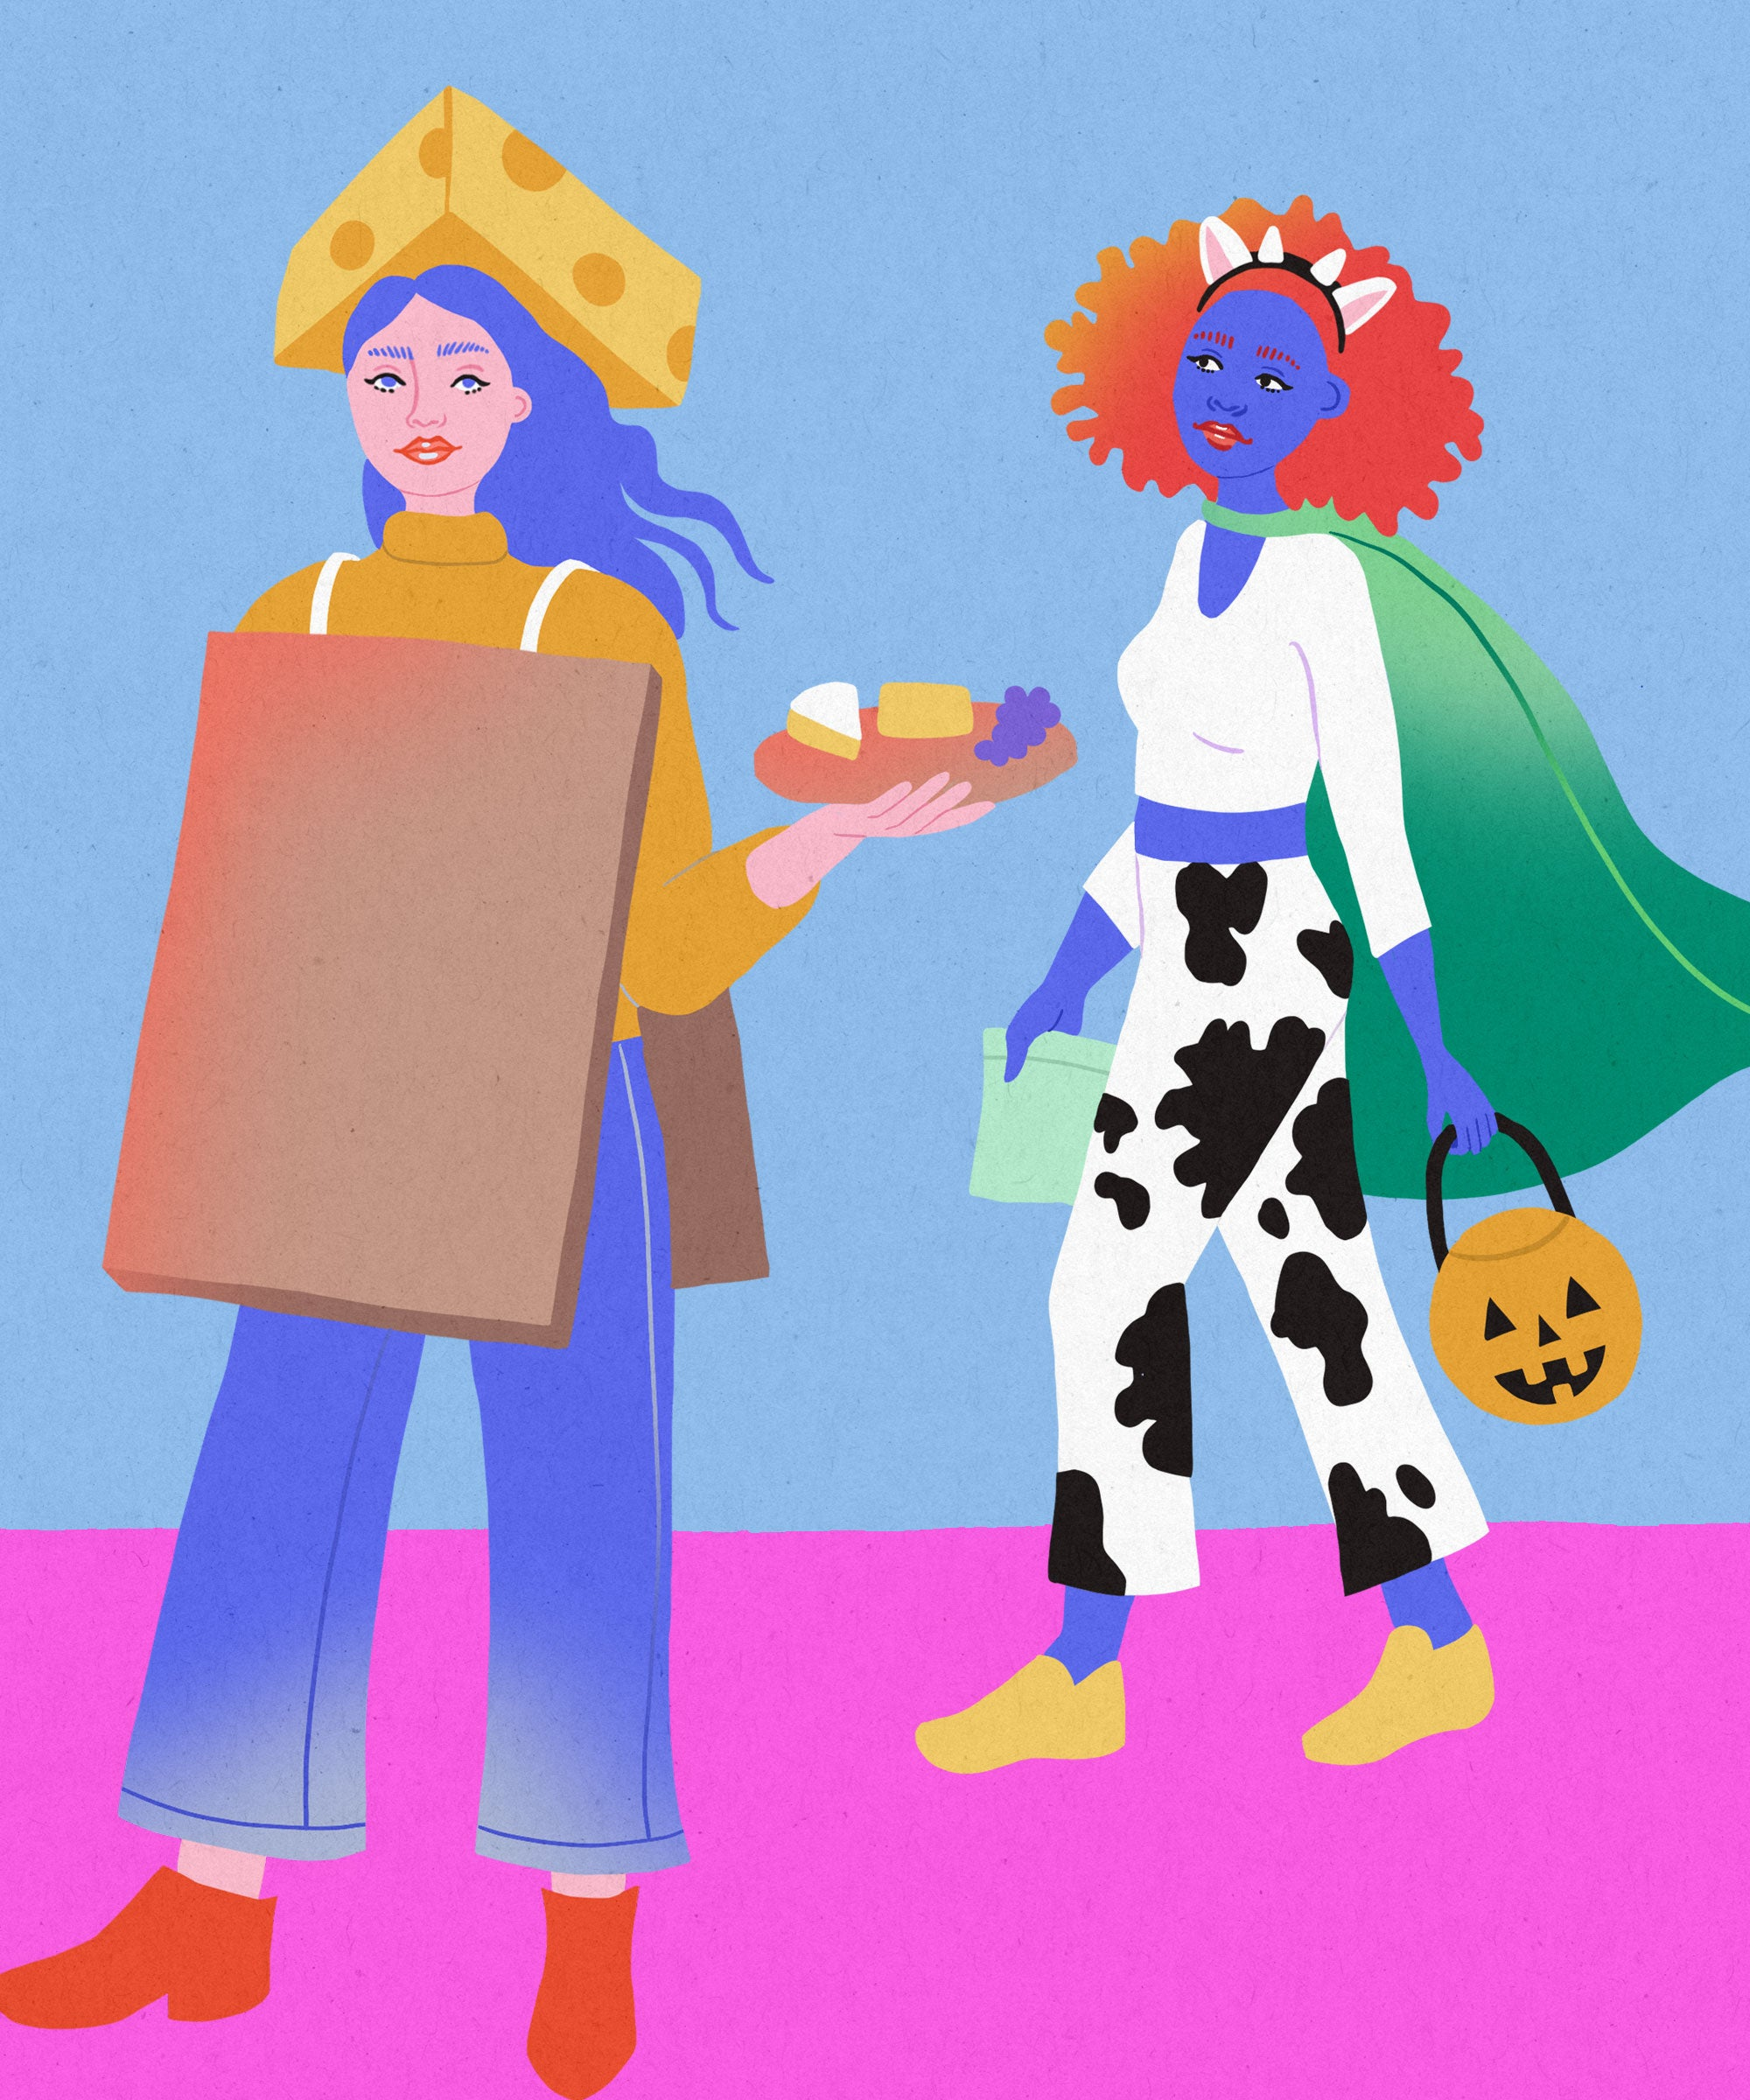 Spiked Seltzer, Beyond Burger & Other Trendy Food Costumes To DIY This Year